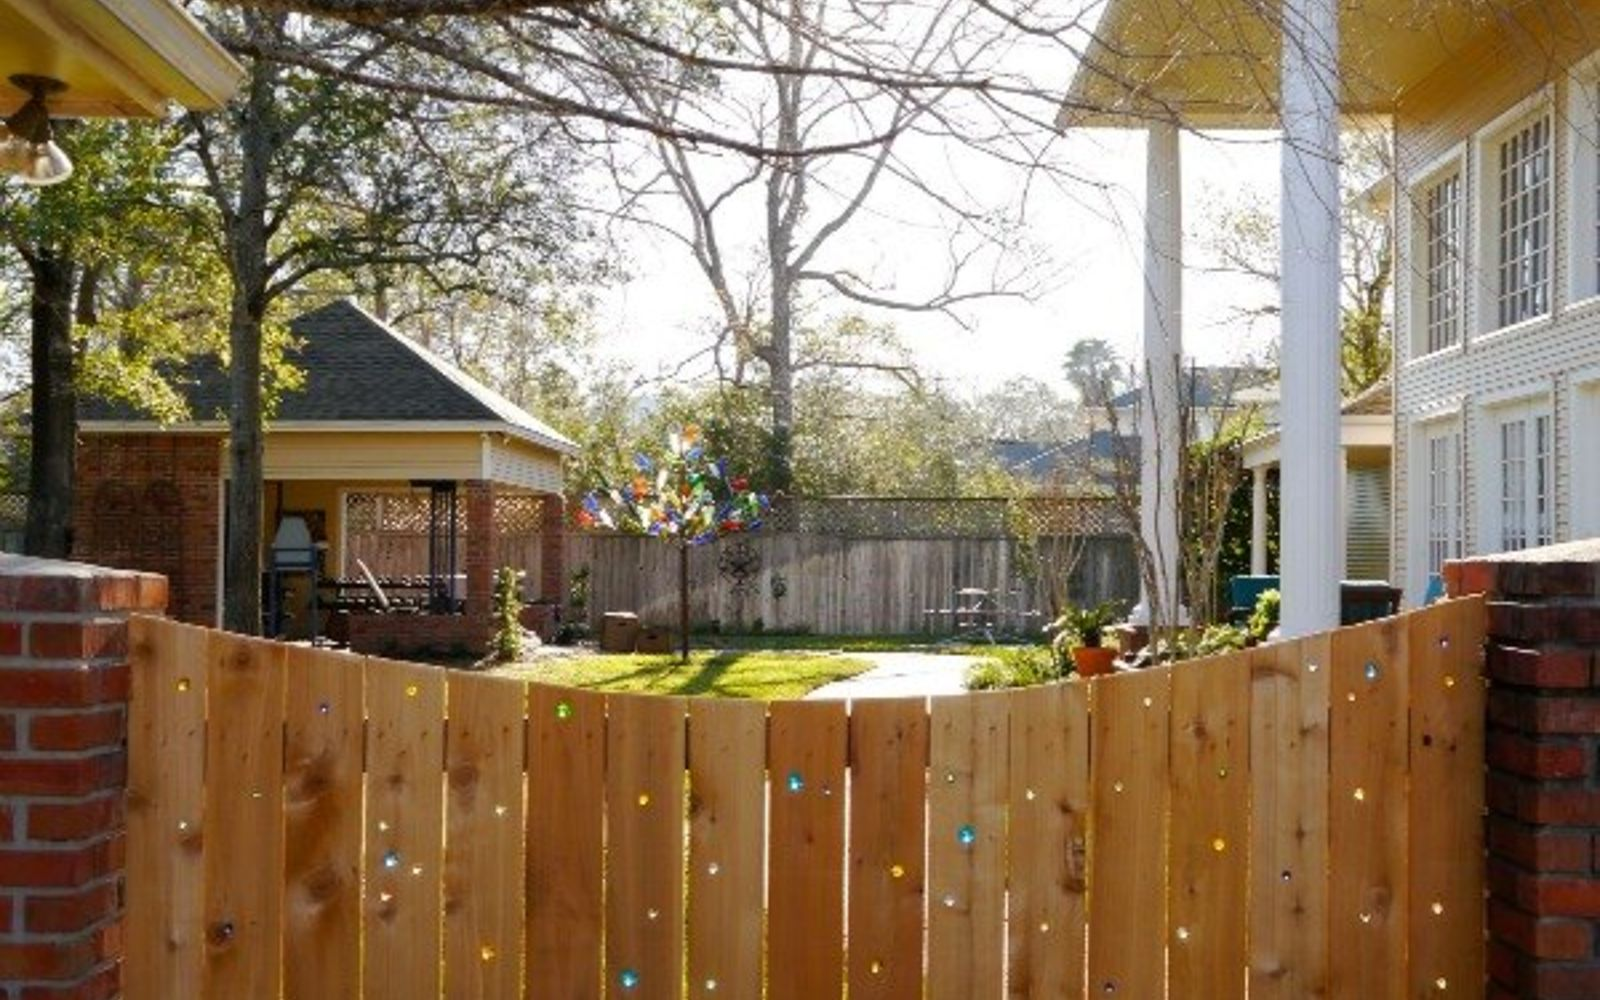 s 15 privacy fences that will turn your yard into a secluded oasis, curb appeal, fences, Drill holes in a plain fence to add marbles